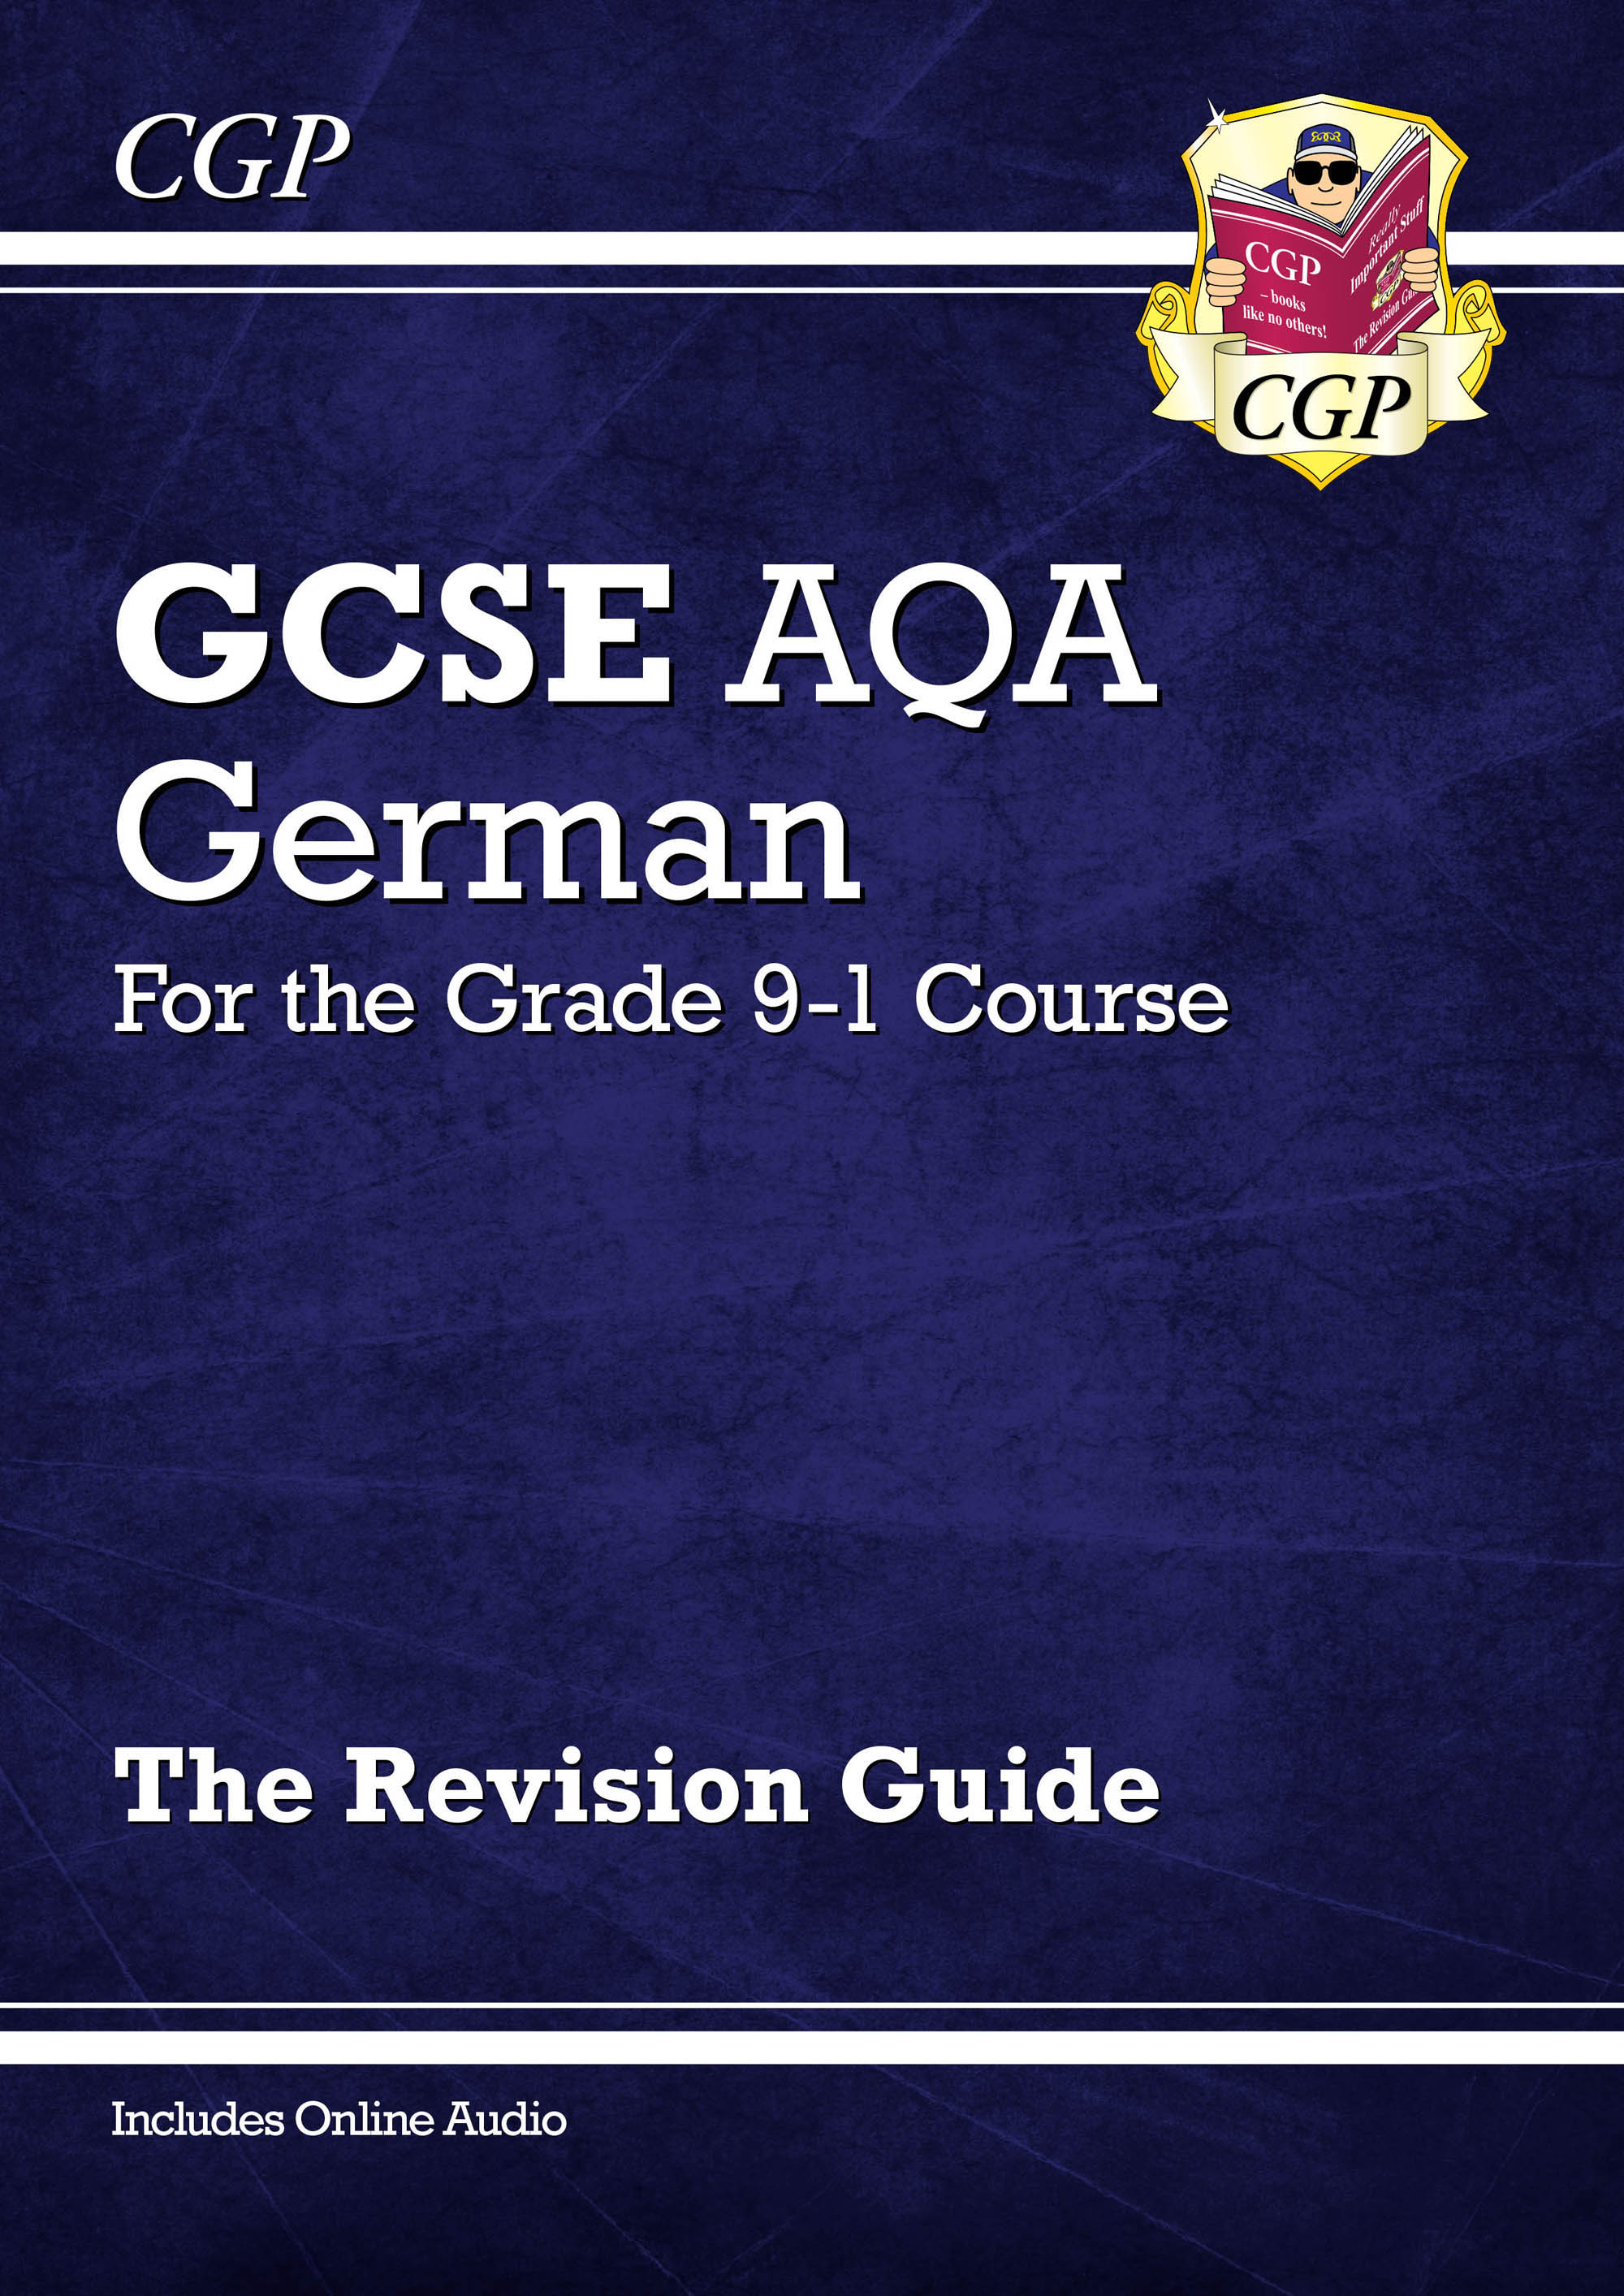 DAR41DK - New GCSE German AQA Revision Guide - for the Grade 9-1 Course